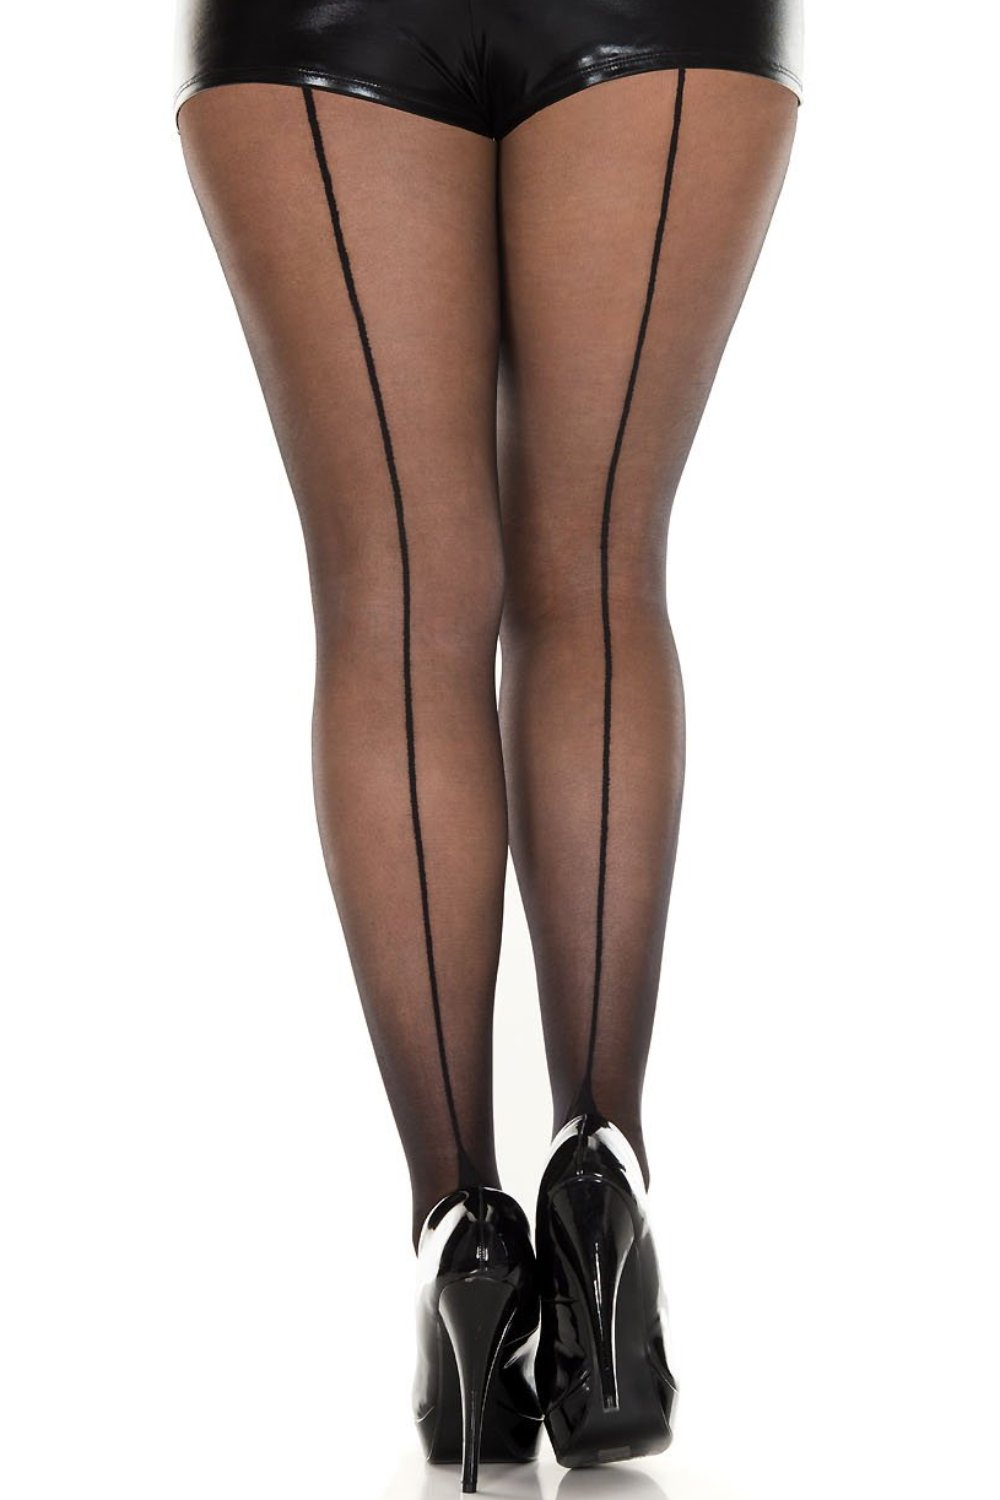 efc09bf7f04 Plus size basic sheer pantyhose with sexy back seam – QUEENSLEGS.COM